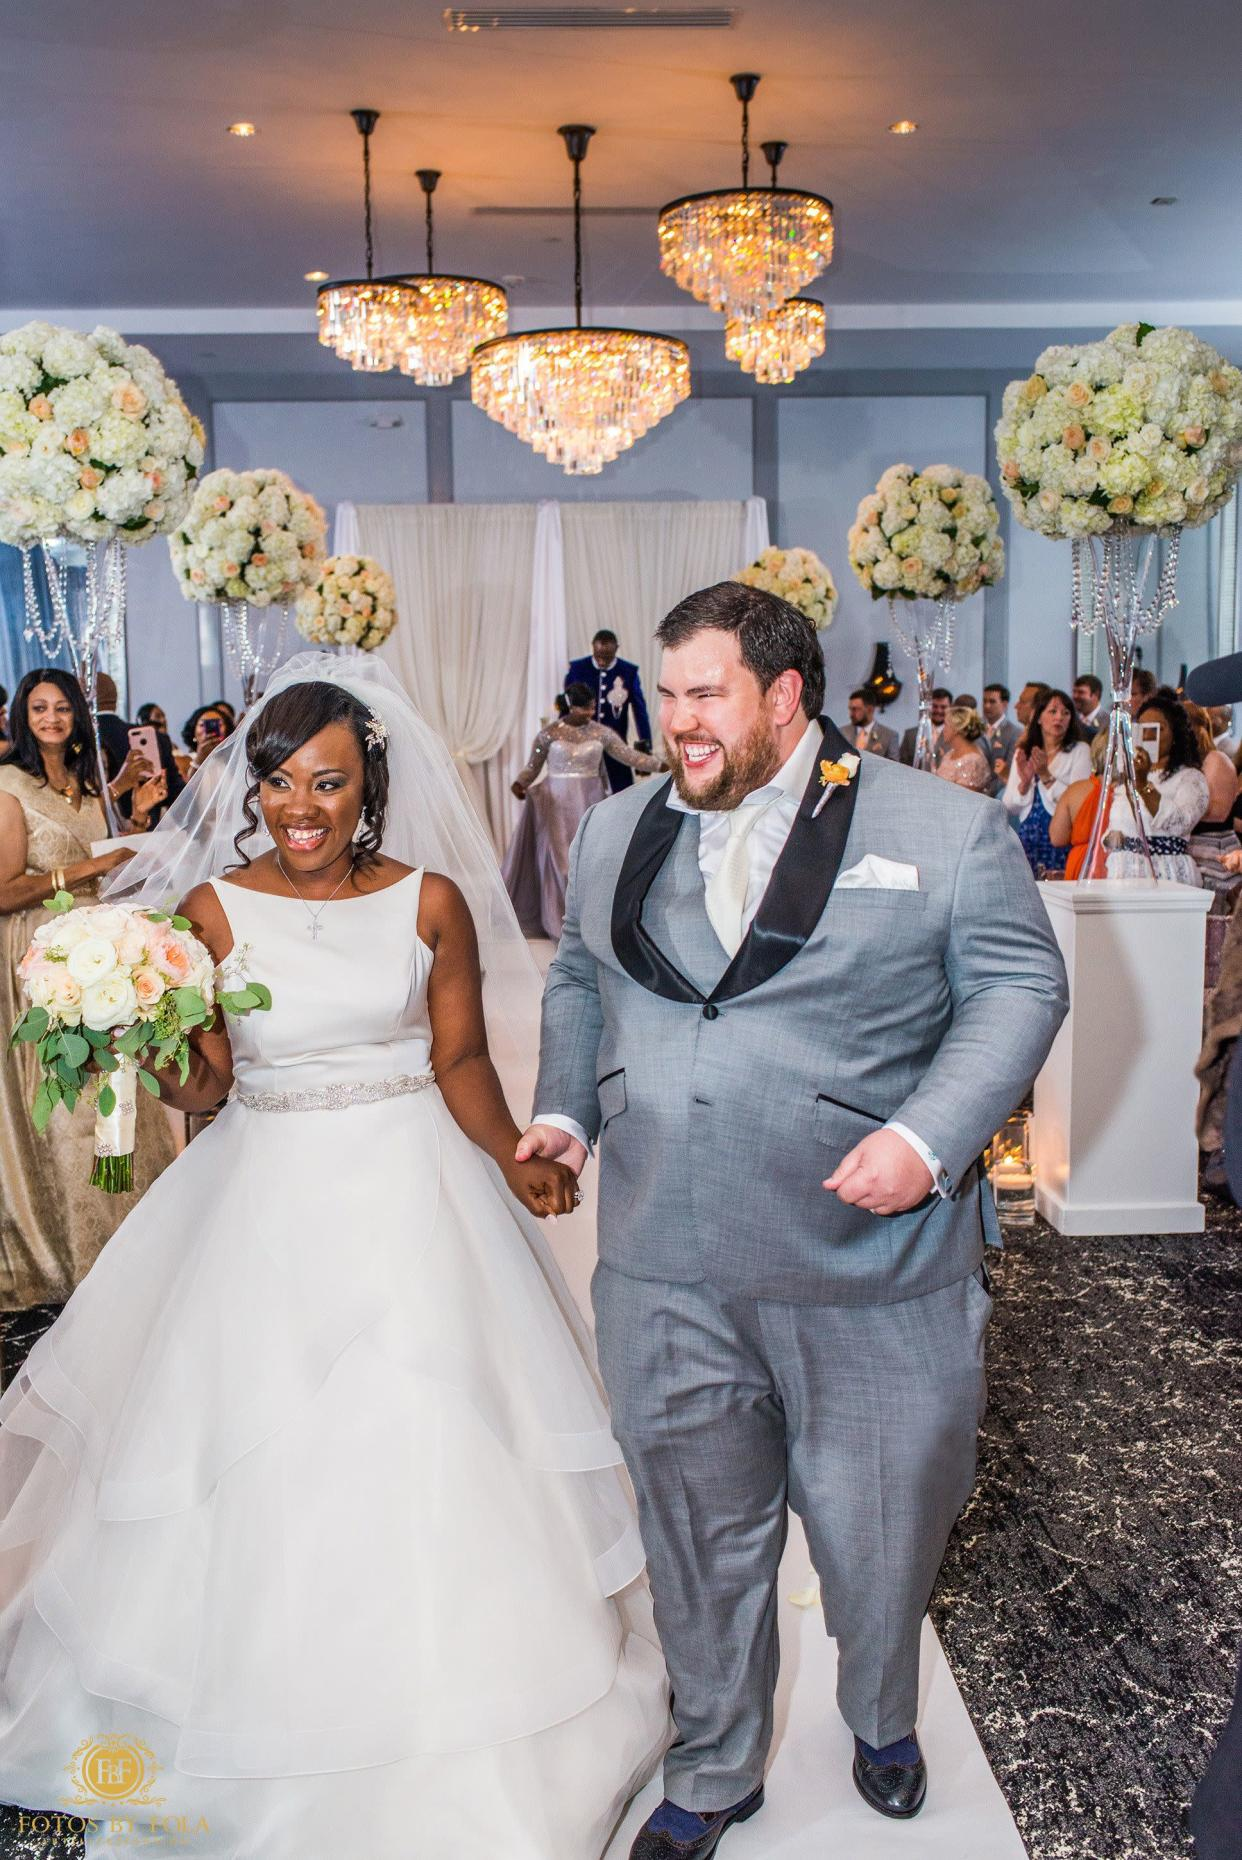 """""""Justus was the happiest man in the world after tying the knot with the love of his life. Congrats to Lily and Justus!"""" --&nbsp;<i>Afolabi Sogunro&nbsp;&nbsp;&nbsp;</i>"""